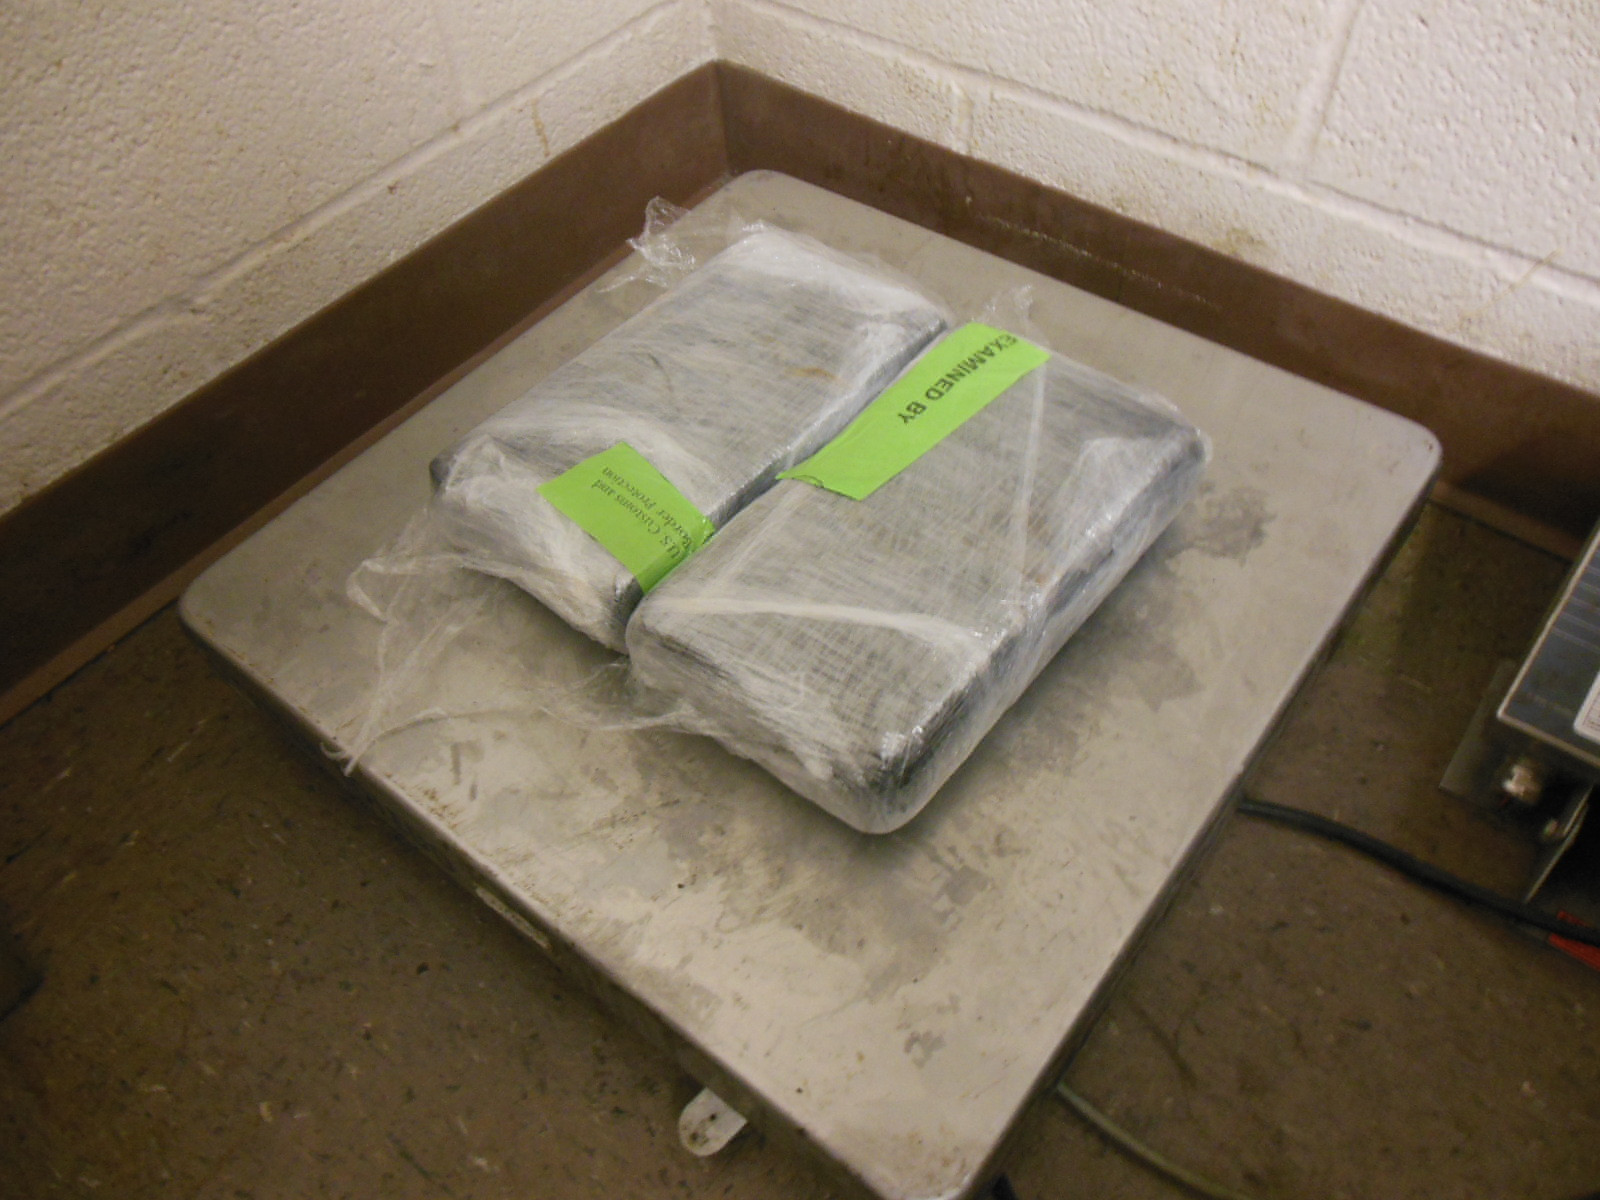 Gateway Cocaine Seizure 09072016, Courtesy of CBP Brownsville_1473433934020.jpg